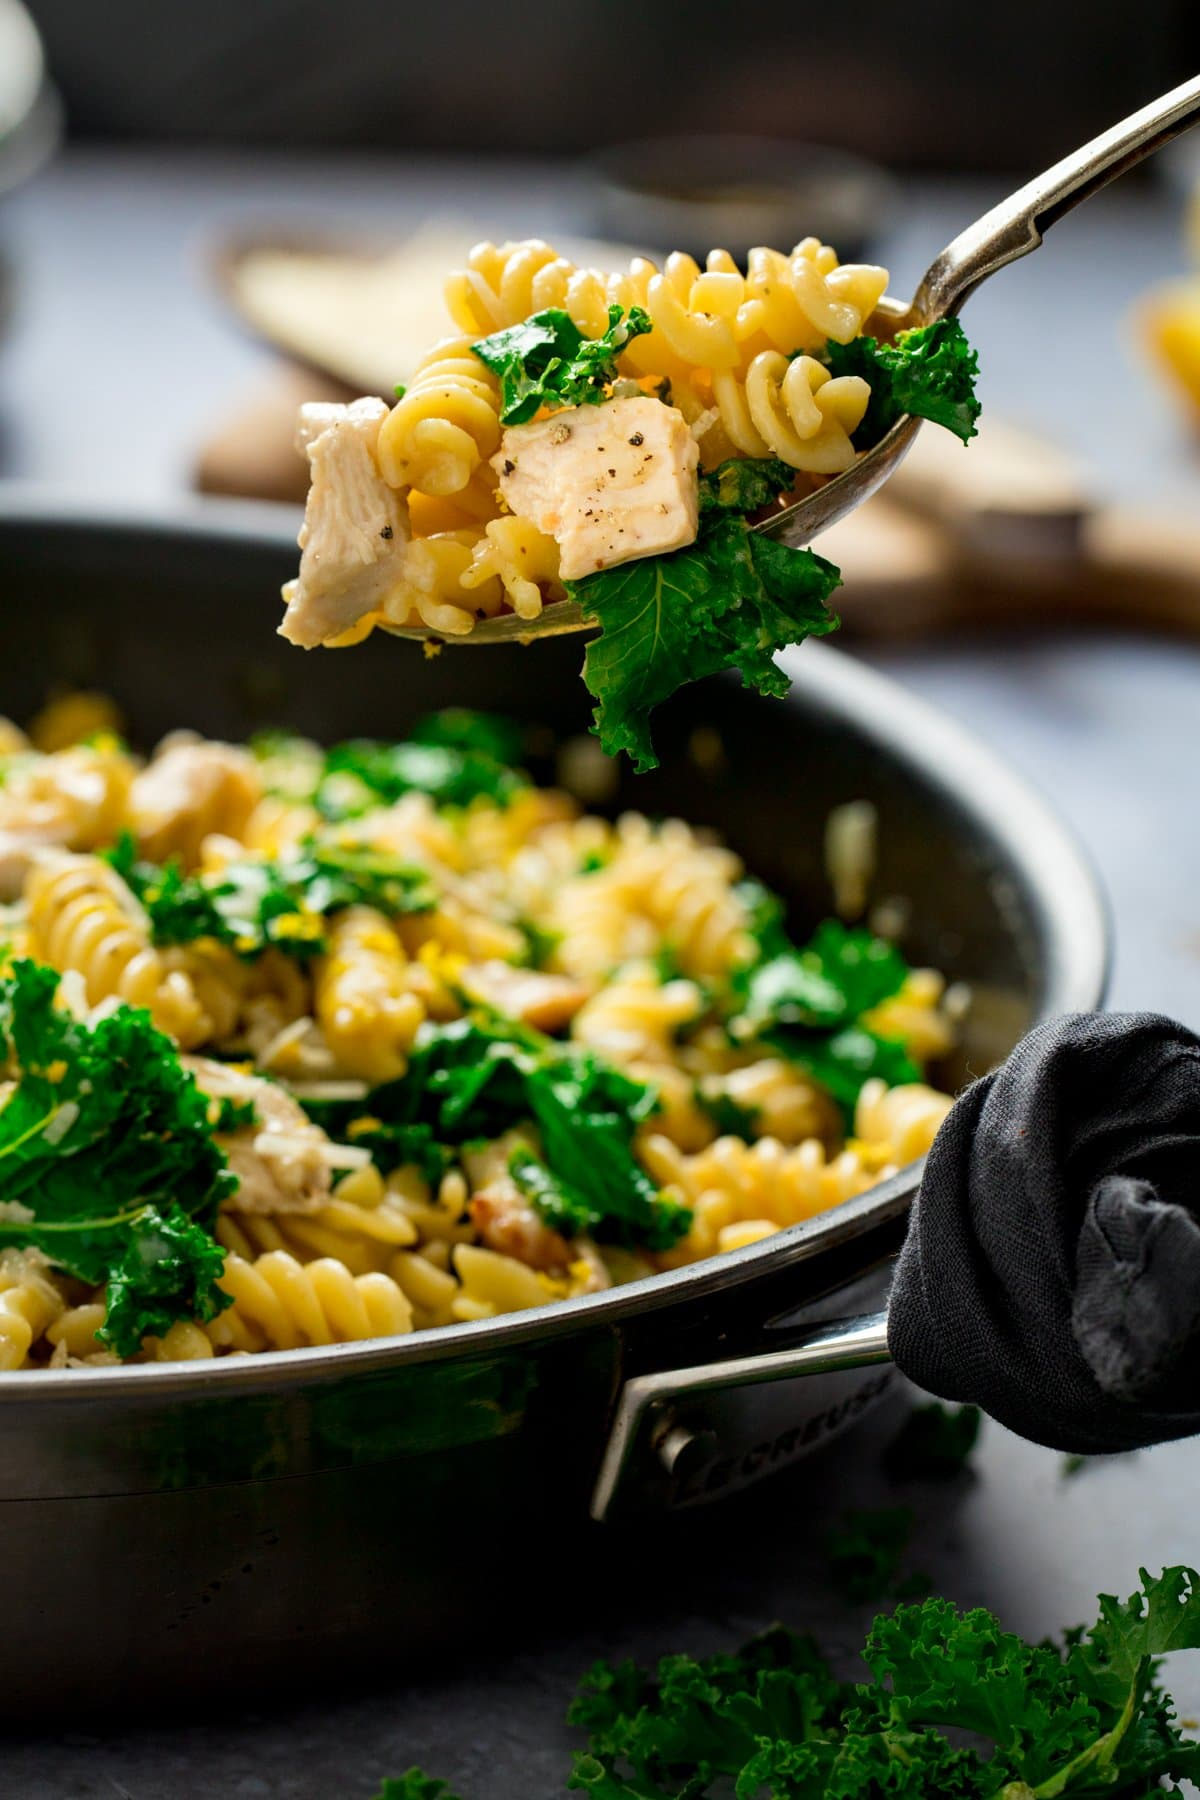 Spoonful being taken from a pan of chicken, kale and pasta